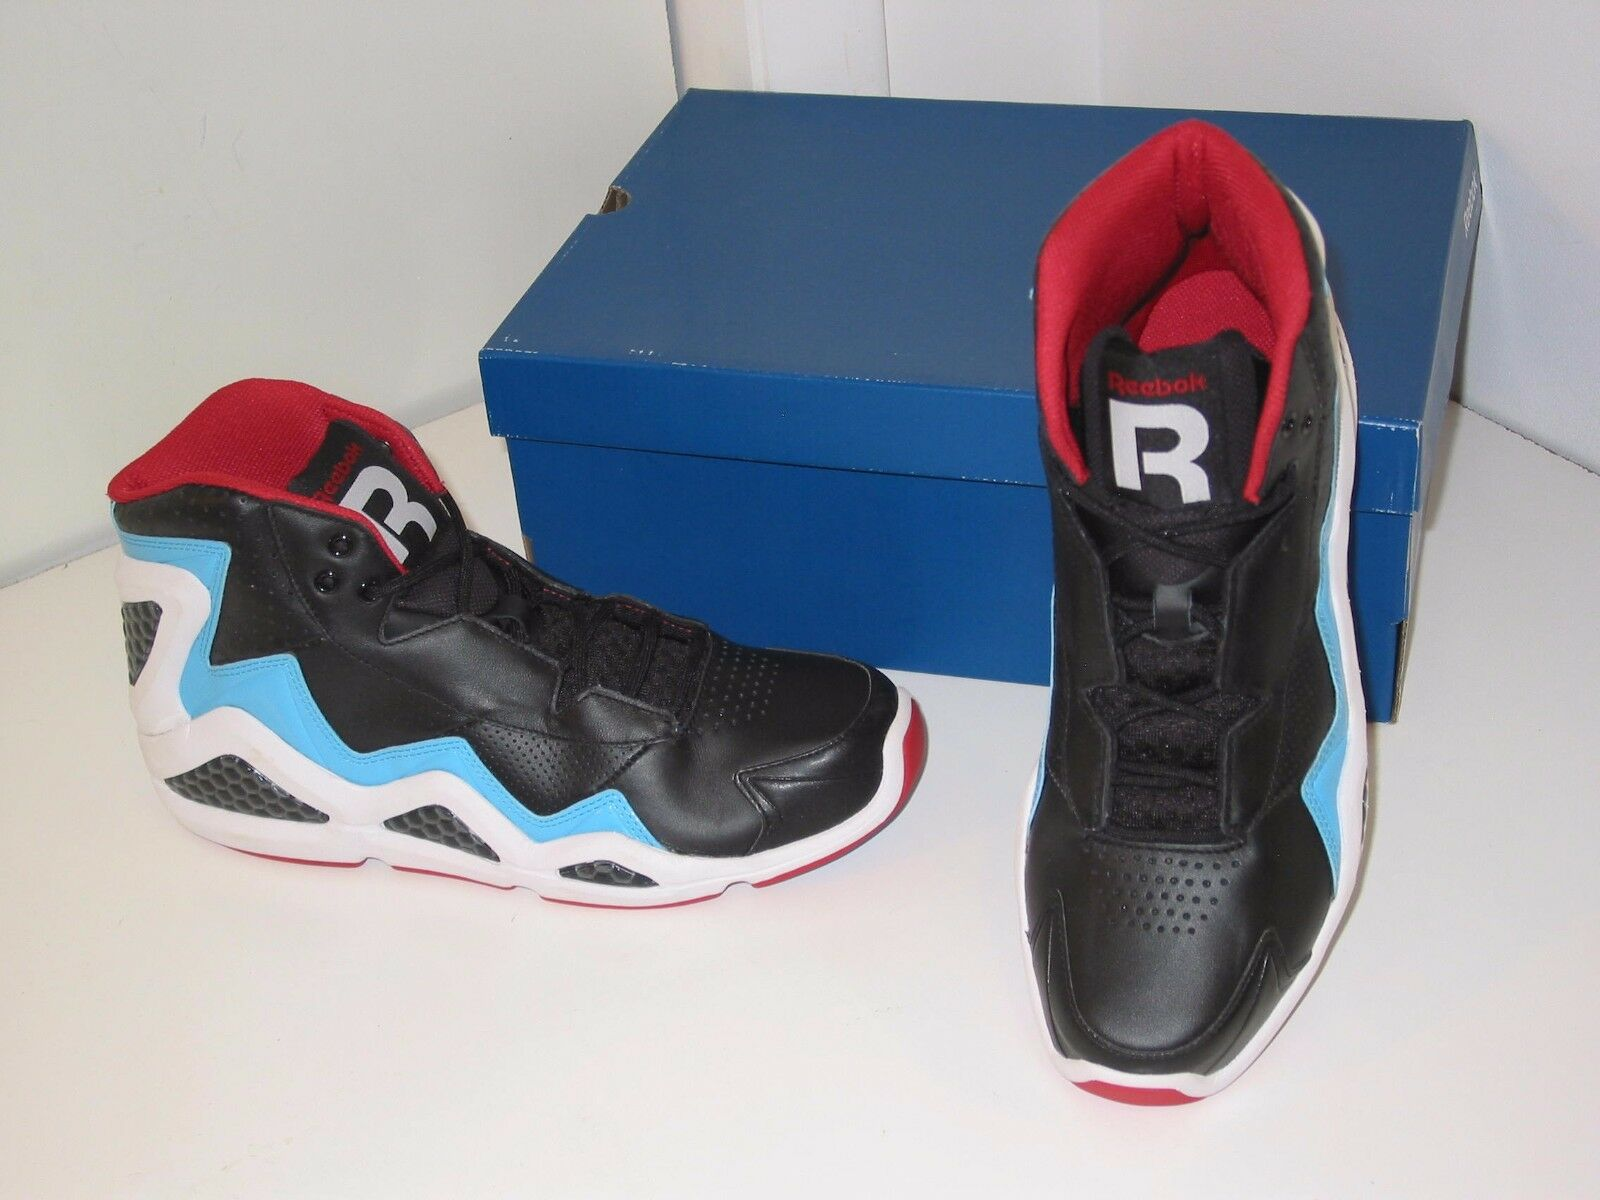 Reebok Sermon Hi Top Retro Basketball Black Blue Red Sneakers Shoes Mens 10